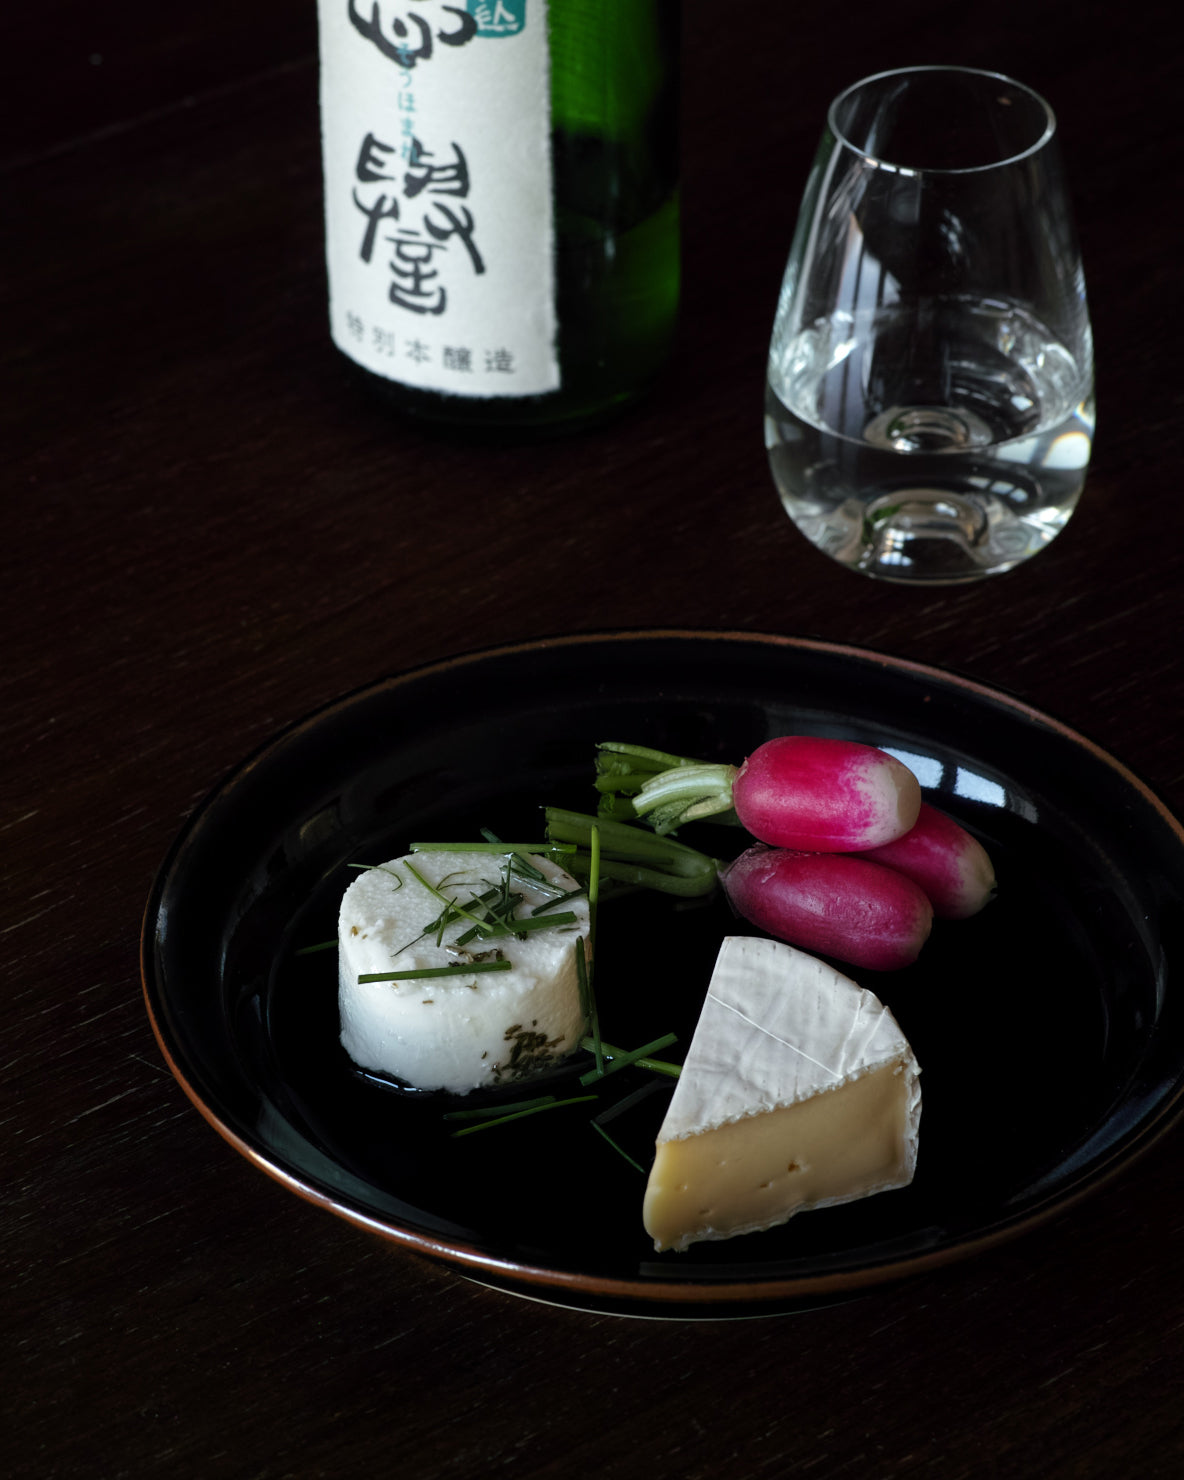 food pairing of cheese and sake, kita sake